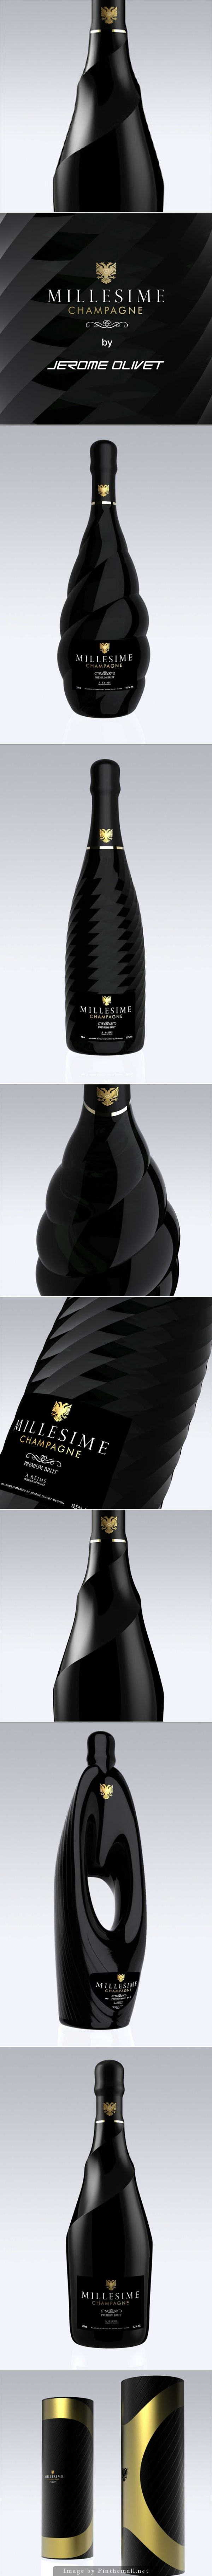 MILLESIME #Champagne #packaging by Jerome Olivet - http://www.packagingoftheworld.com/2014/11/millesime-champagne.html